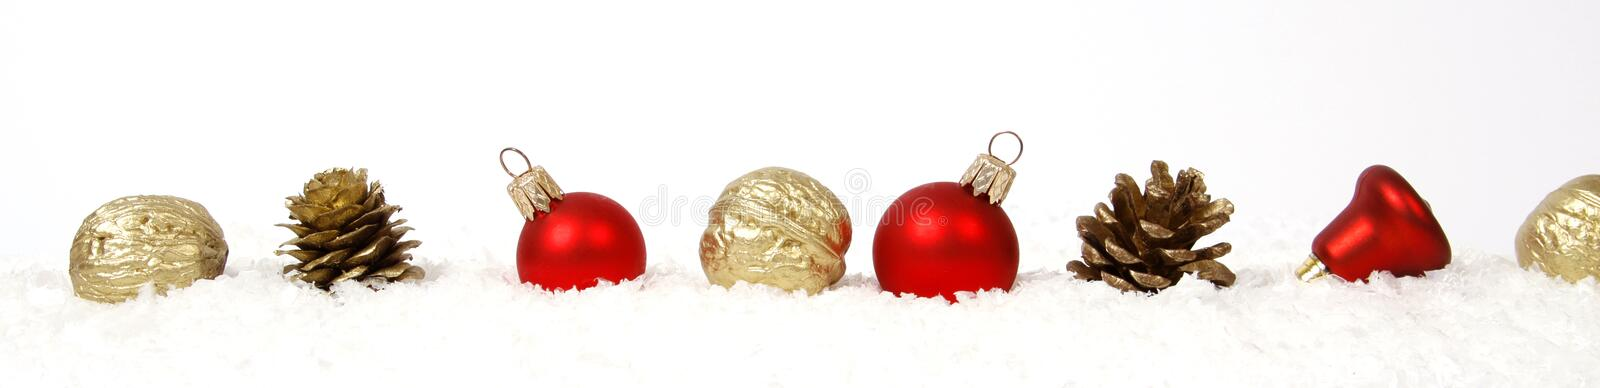 Christmas docoration stock images